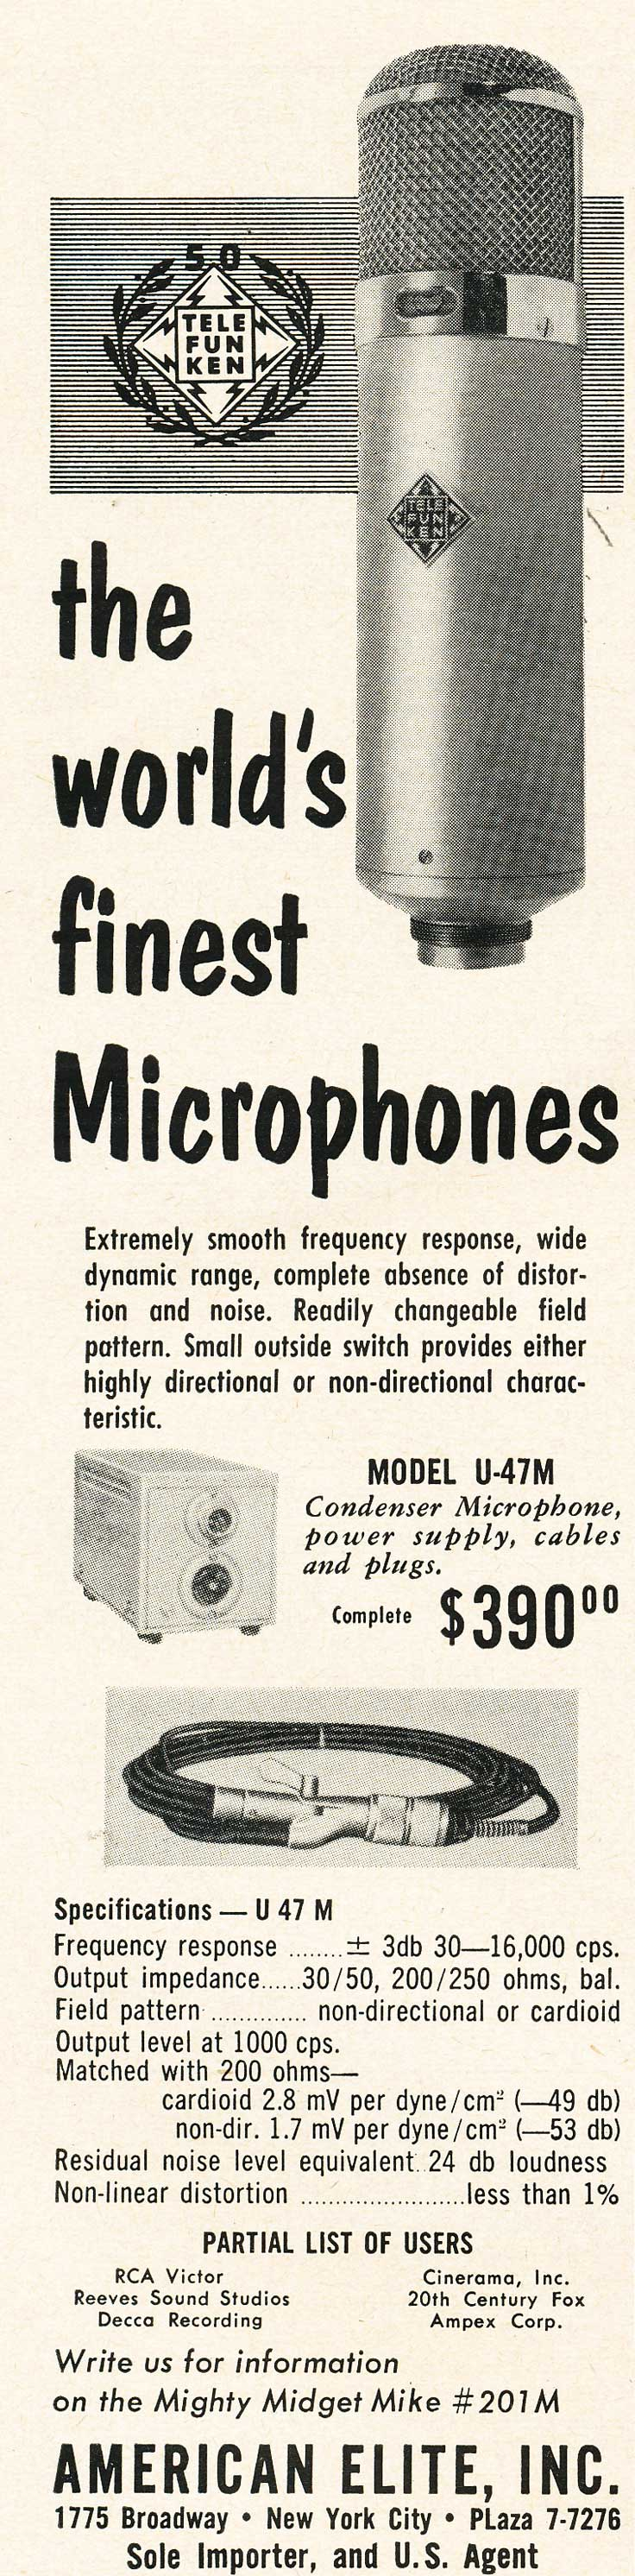 1953 Ad for the Telefunken professional microphone in Reel2ReelTexas.com's vintage recording collection